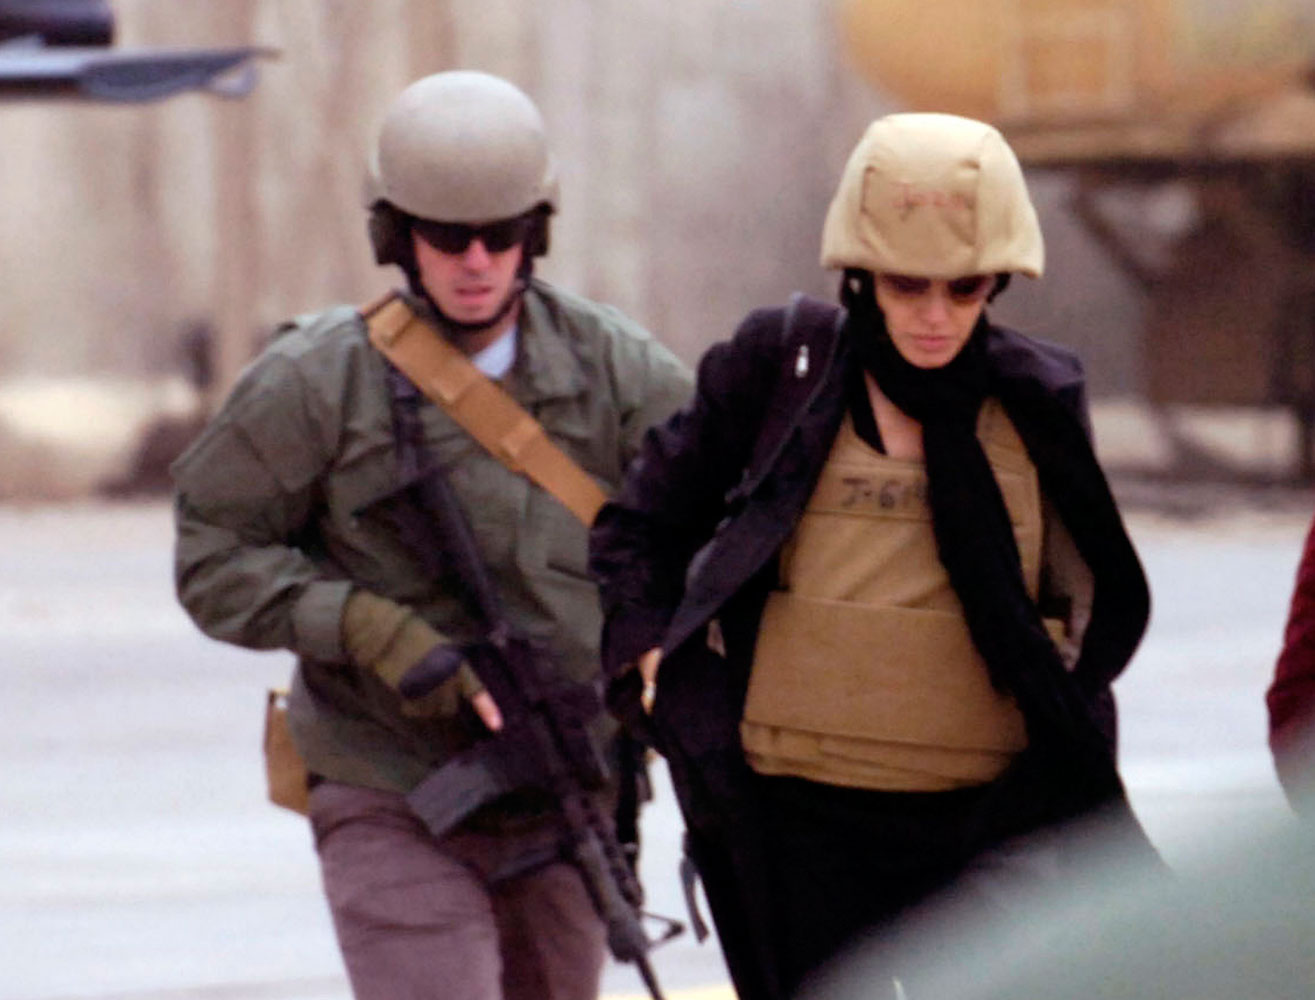 Actress Angelina Jolie visits the Green Zone in Baghdad Feb. 7, 2008.